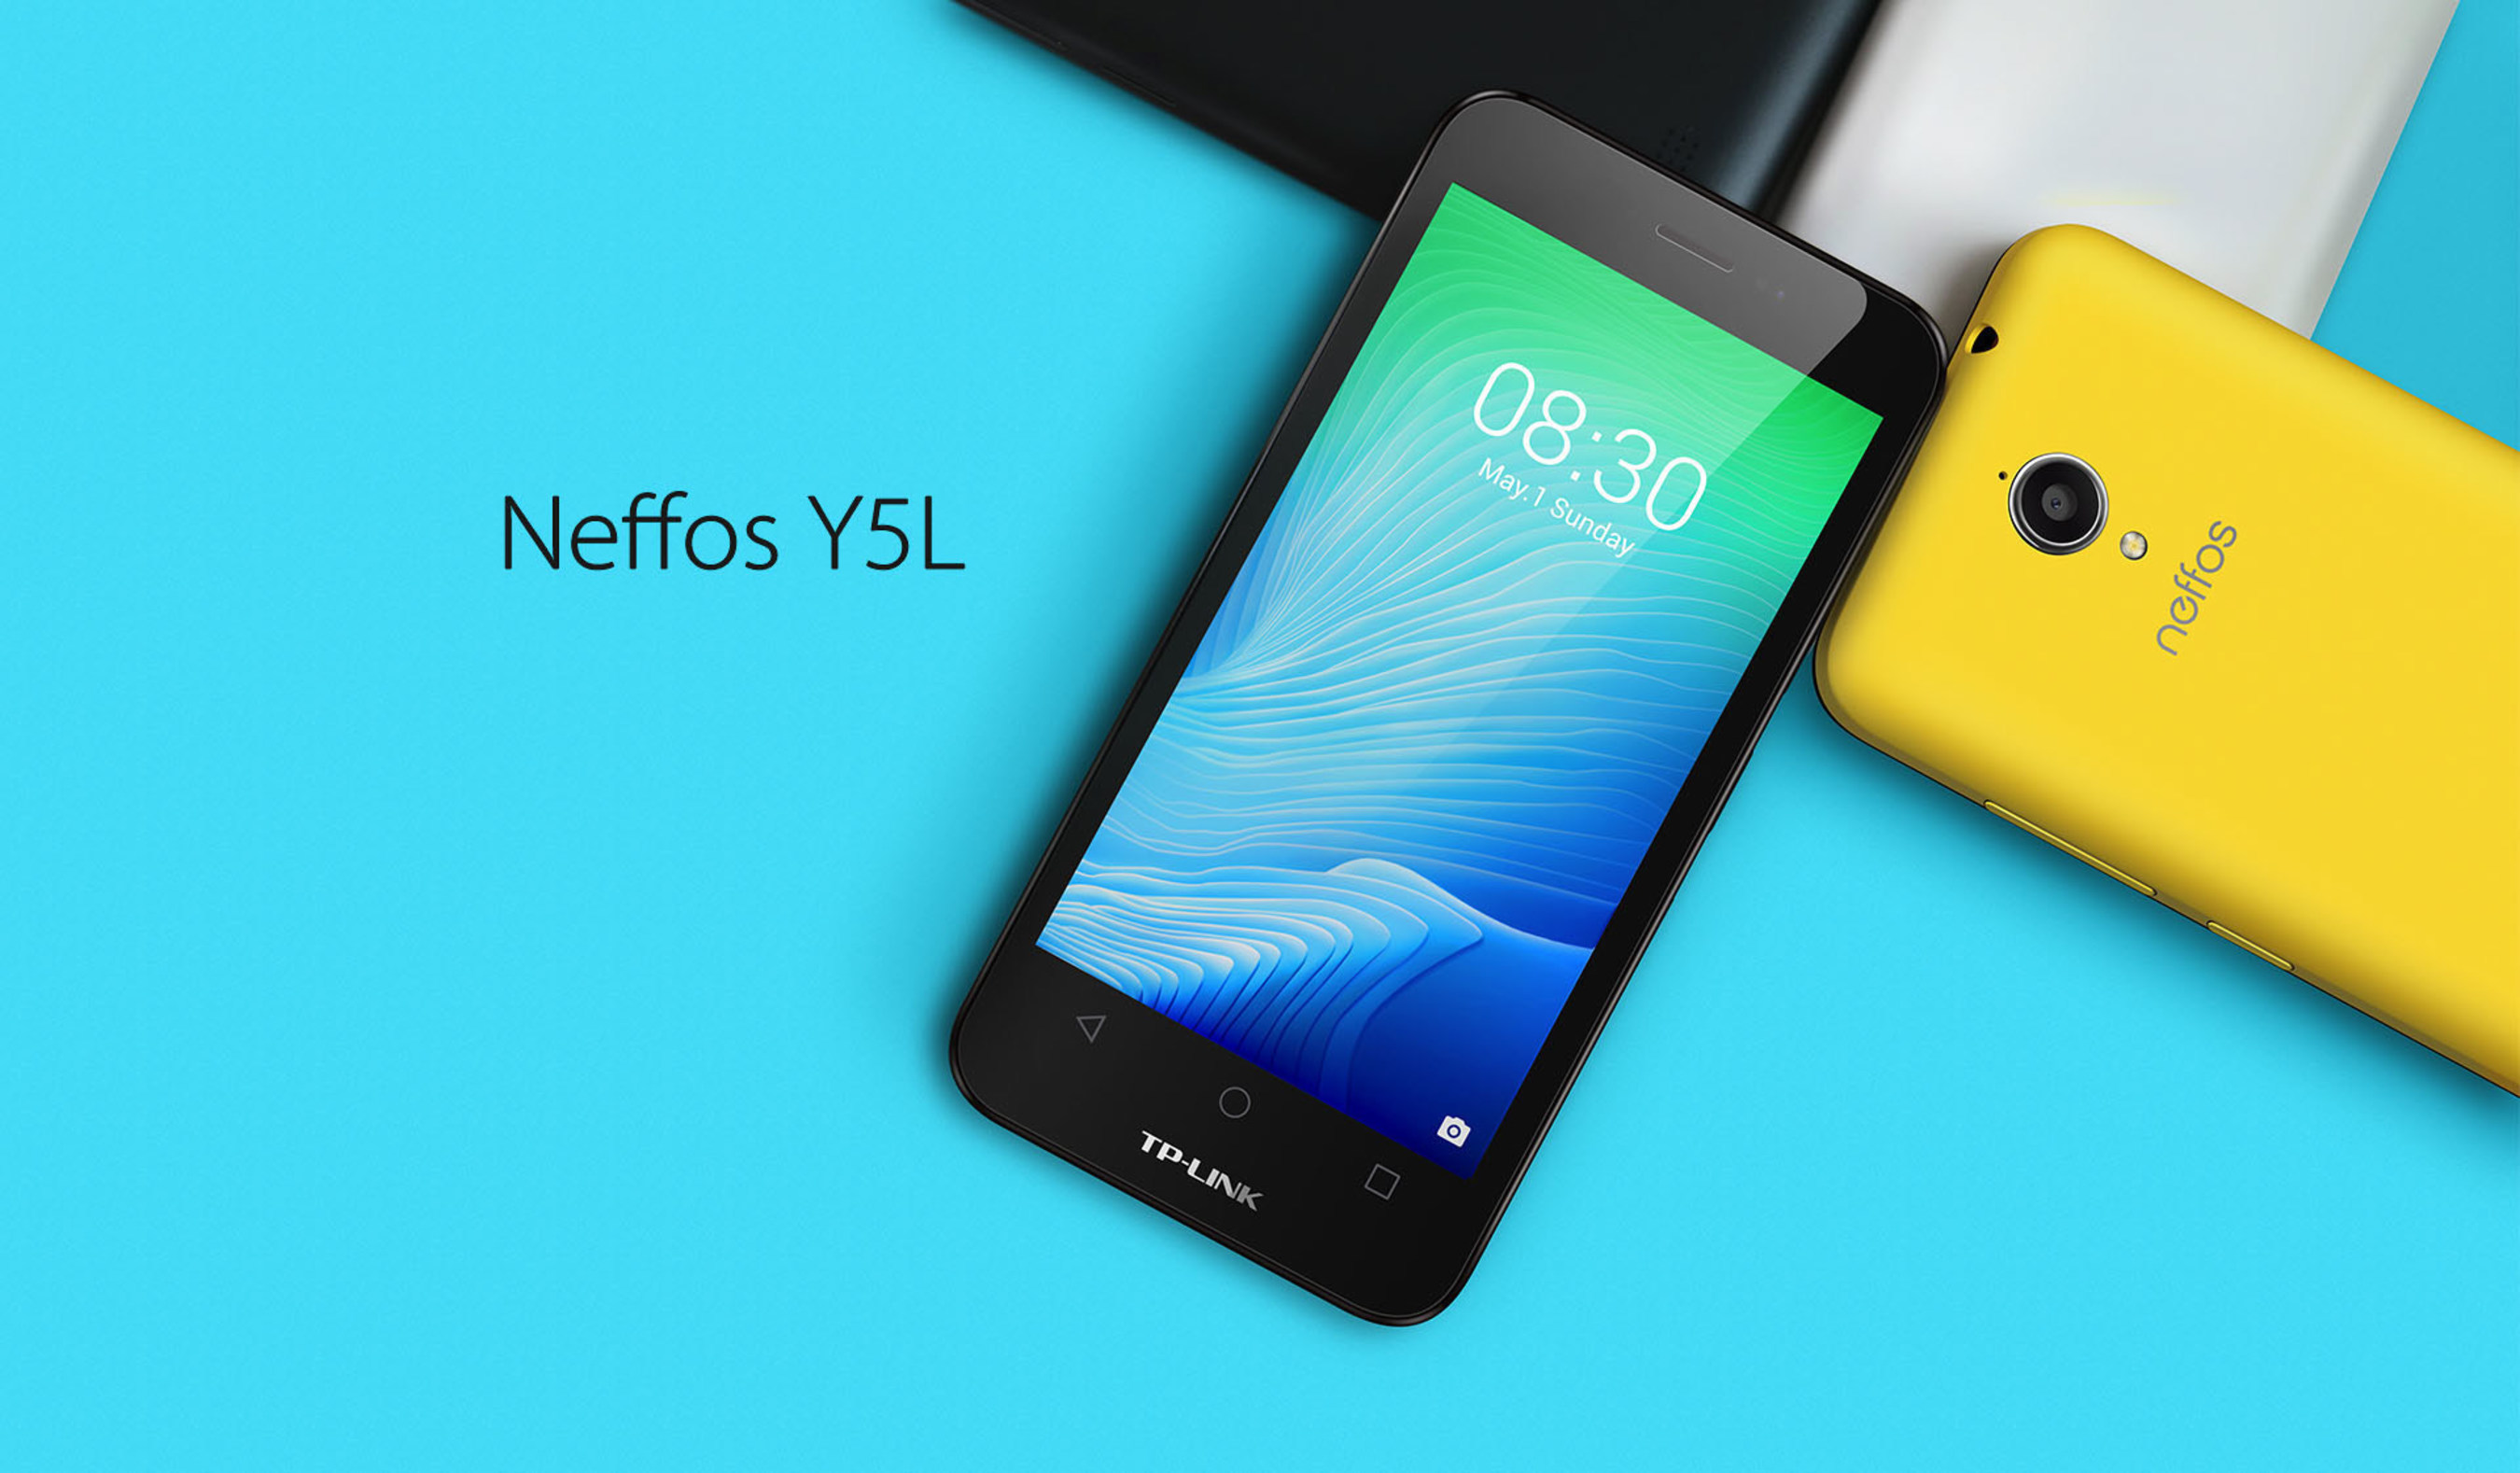 TP-LINK takes the wraps off of the new Neffos Y5L smartphone